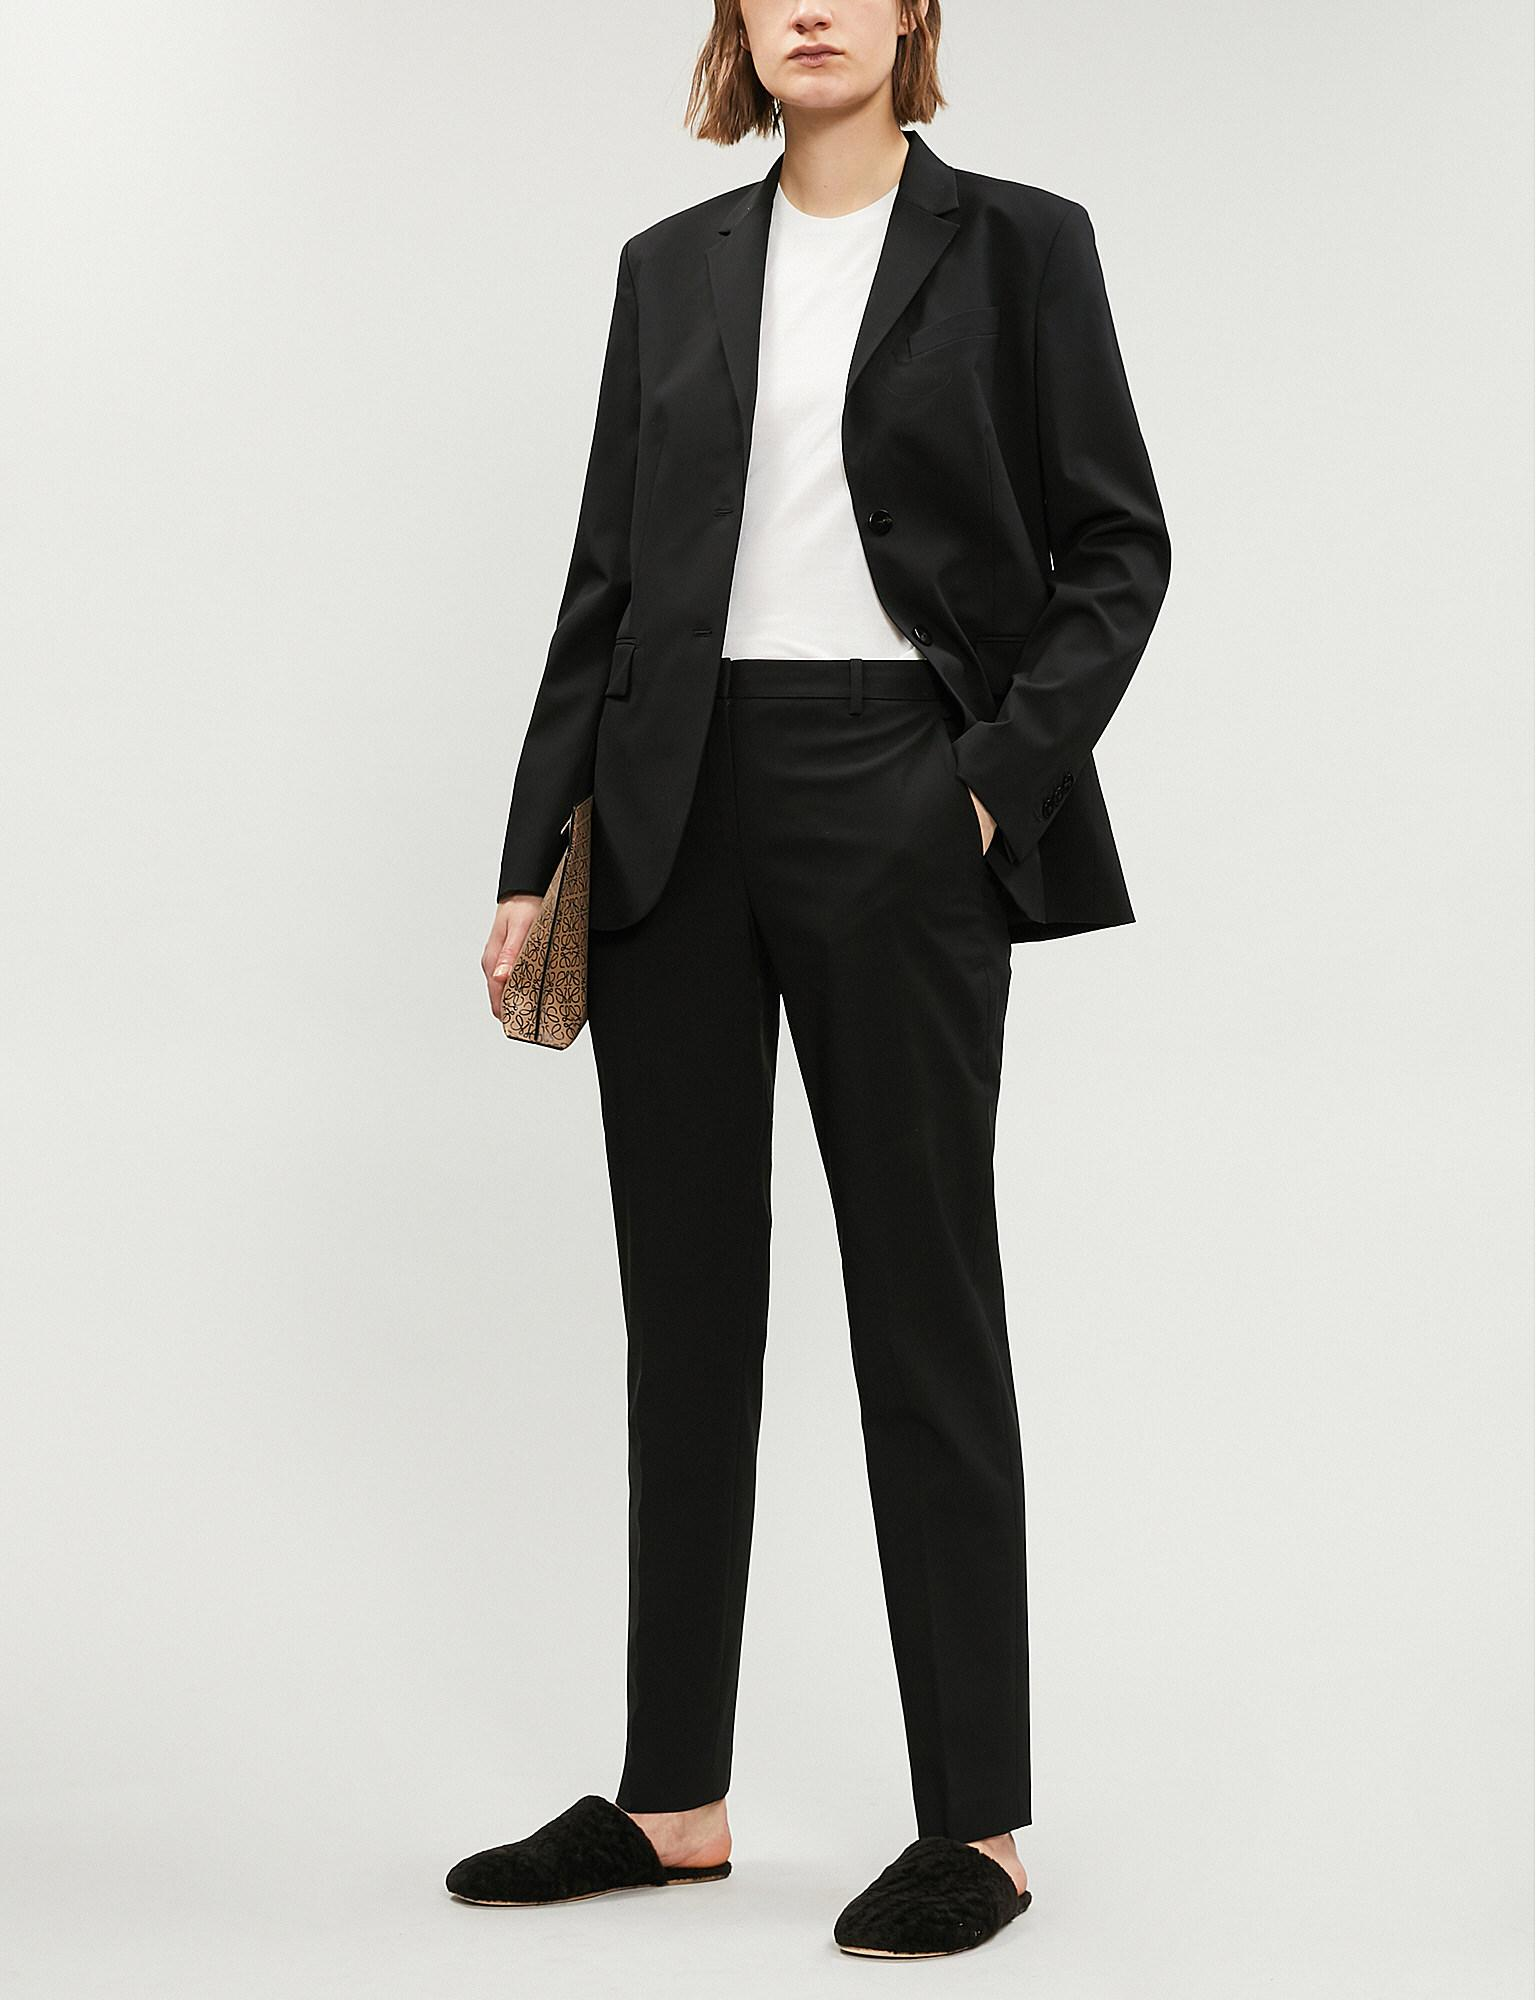 2c26a2d49533 Lyst - Theory Single-breasted Stretch-wool Blazer in Black